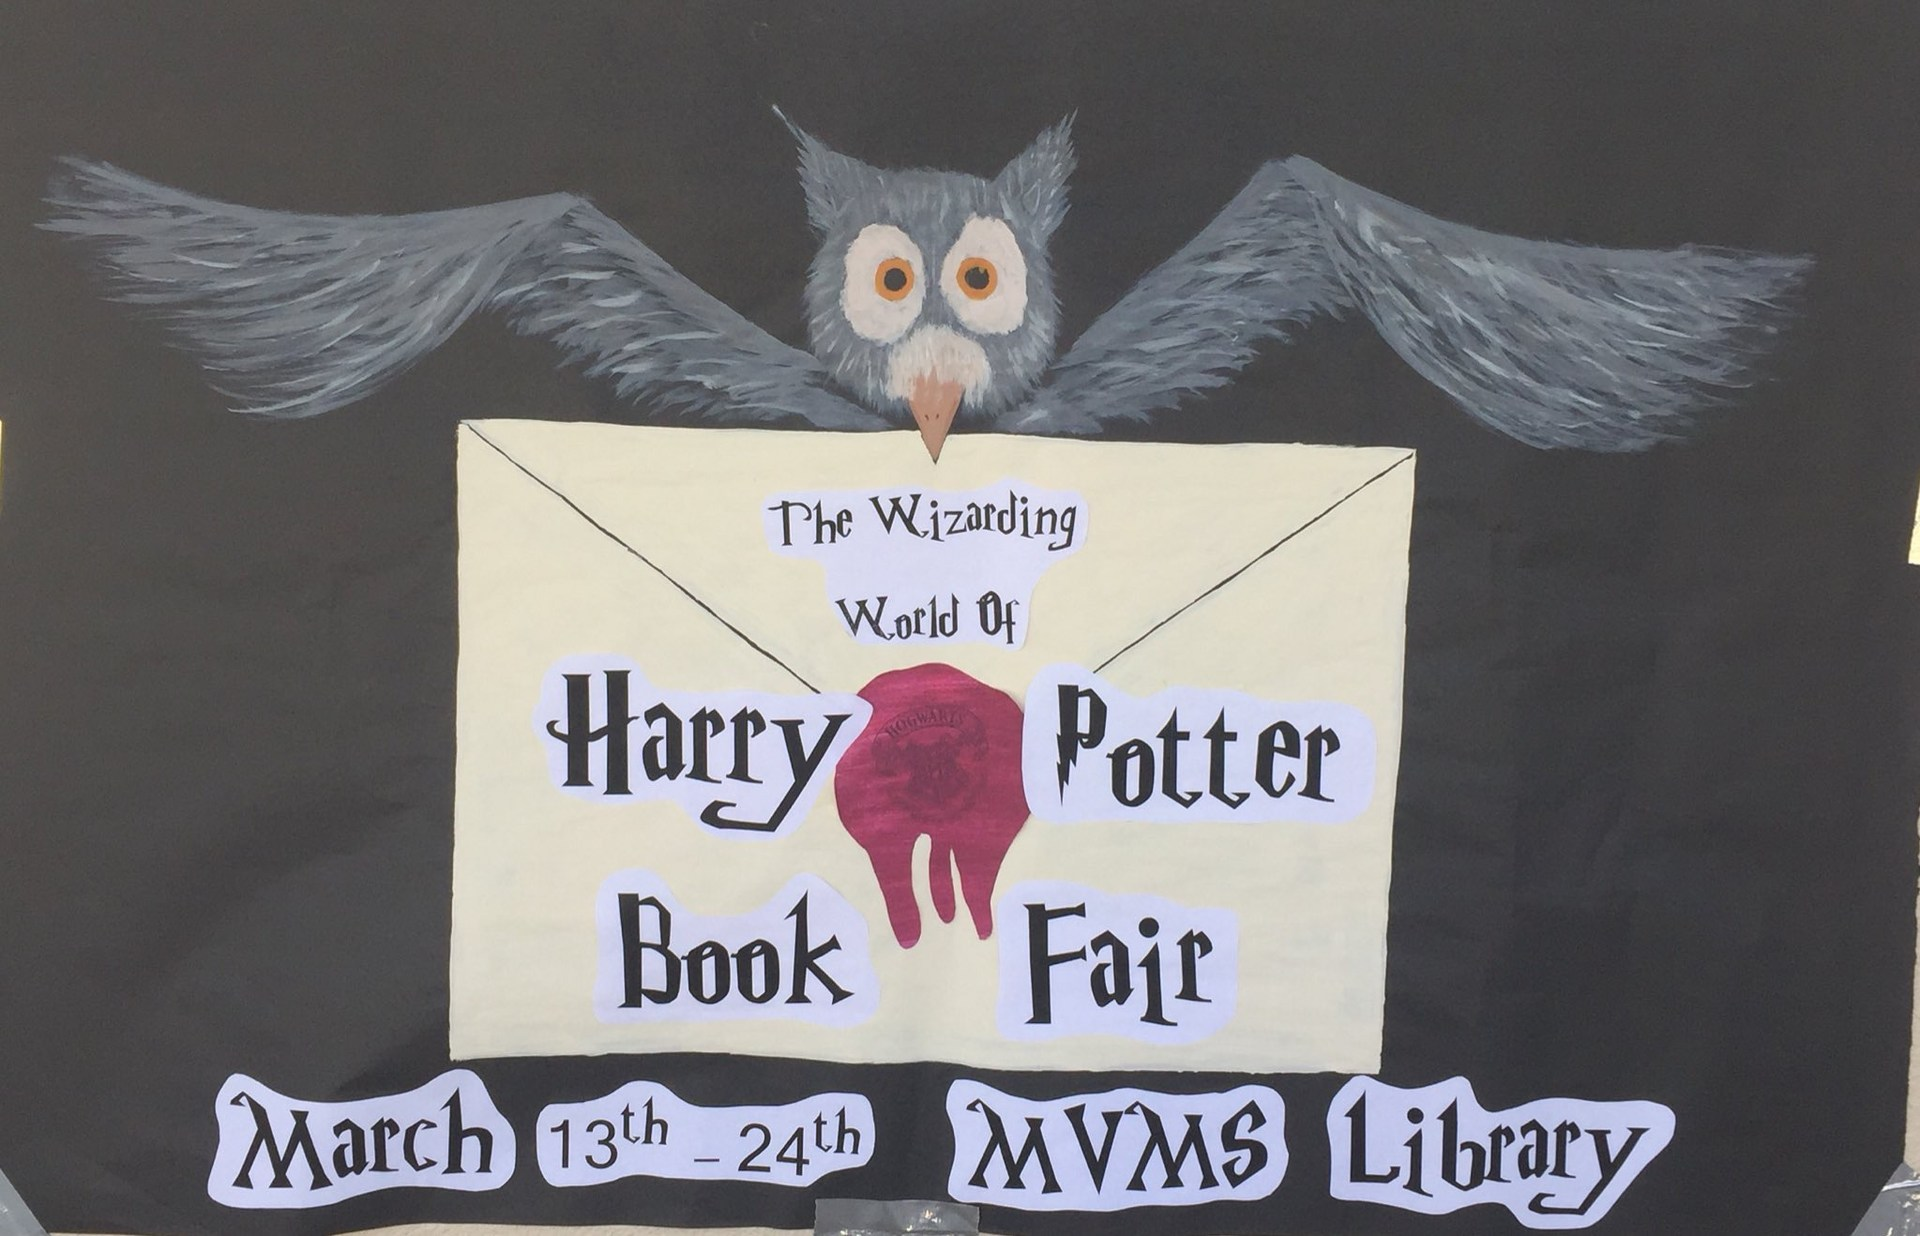 Harry Potter Book Fair Poster